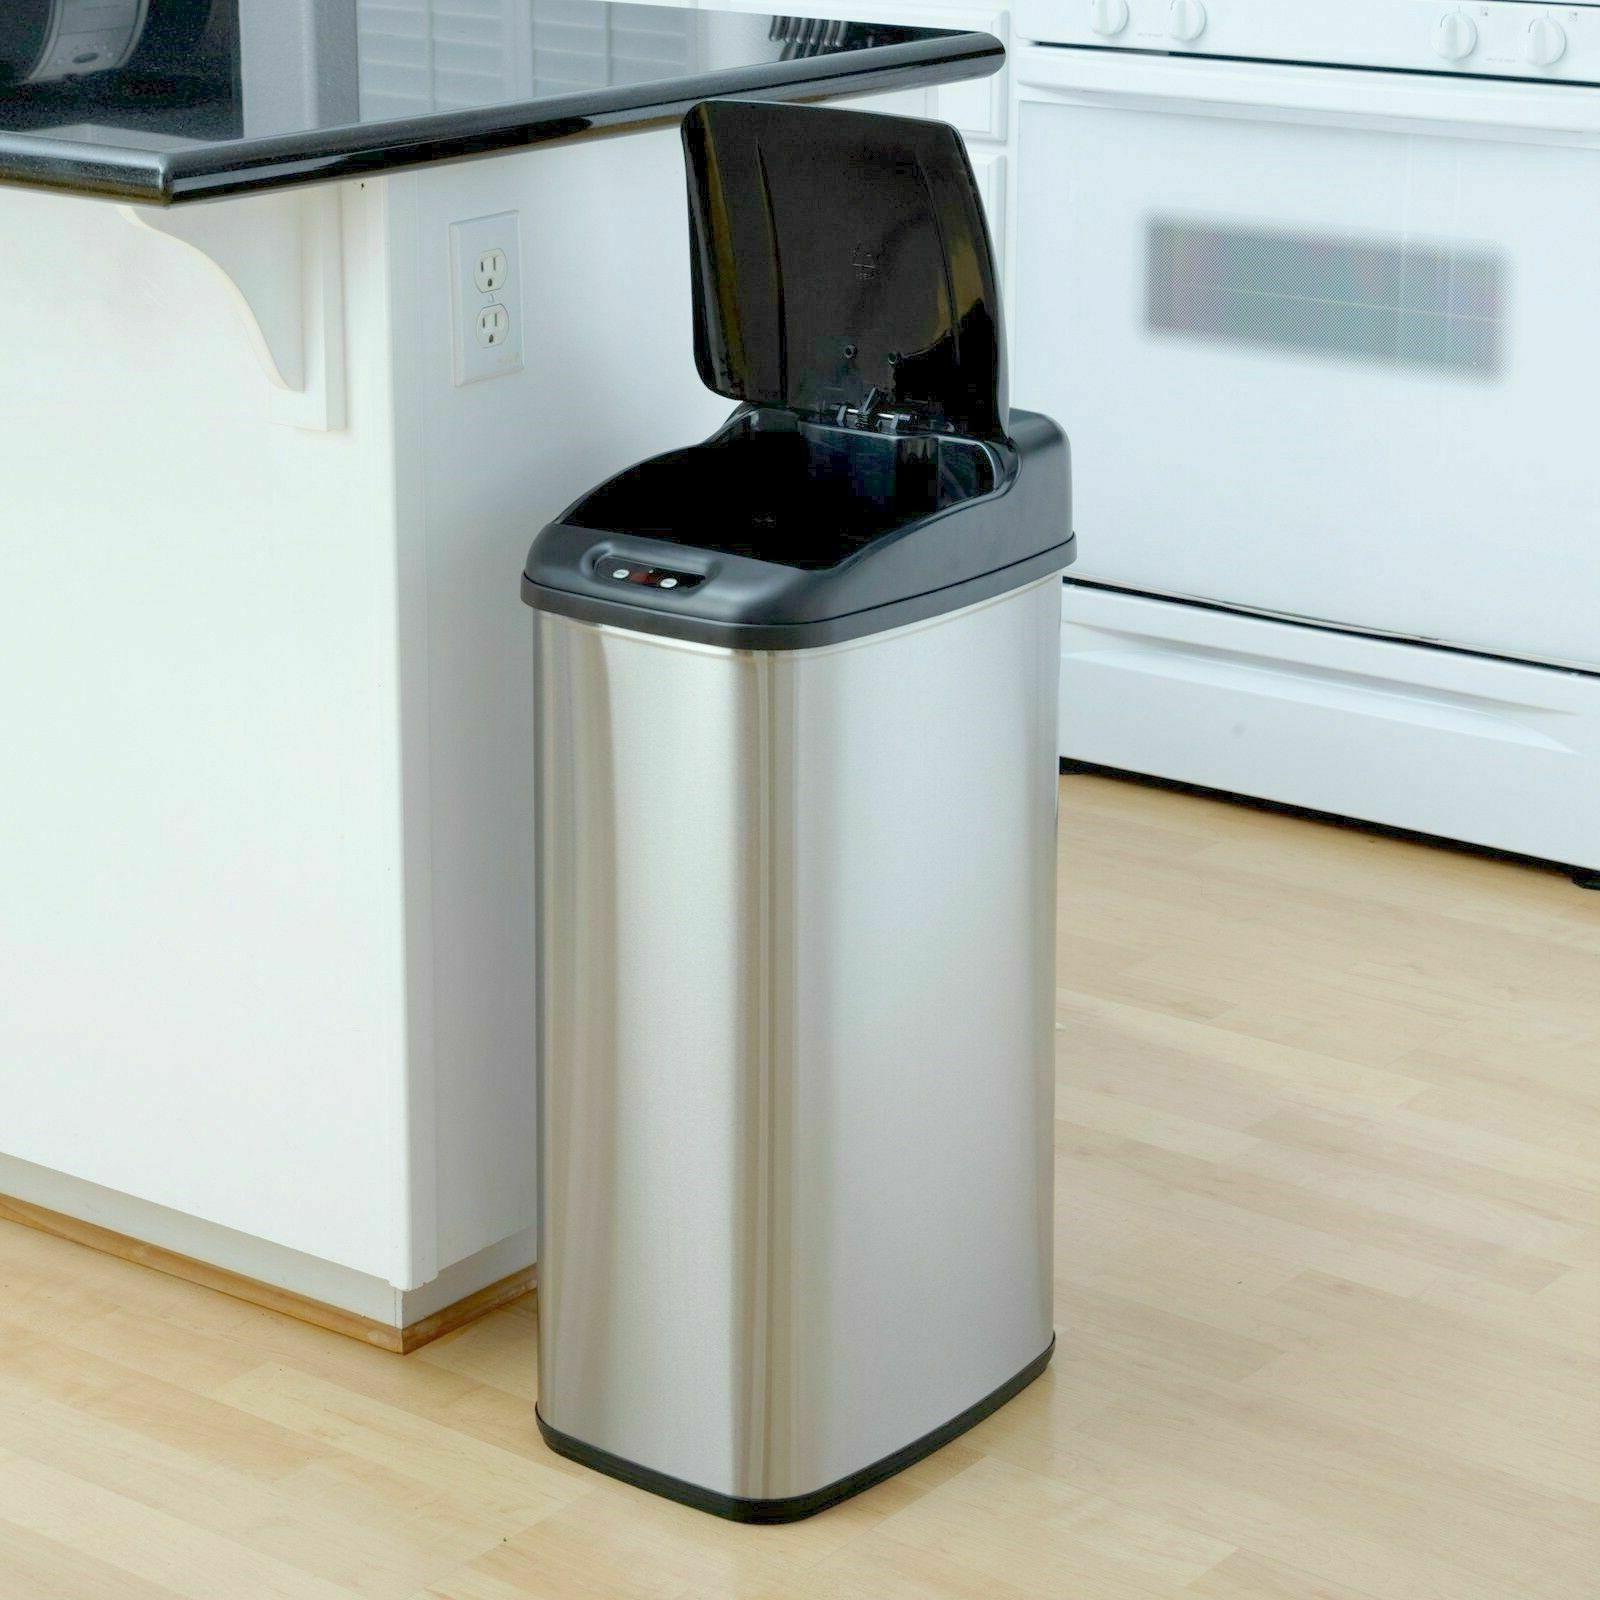 touchless hands free sensor trash can kitchen